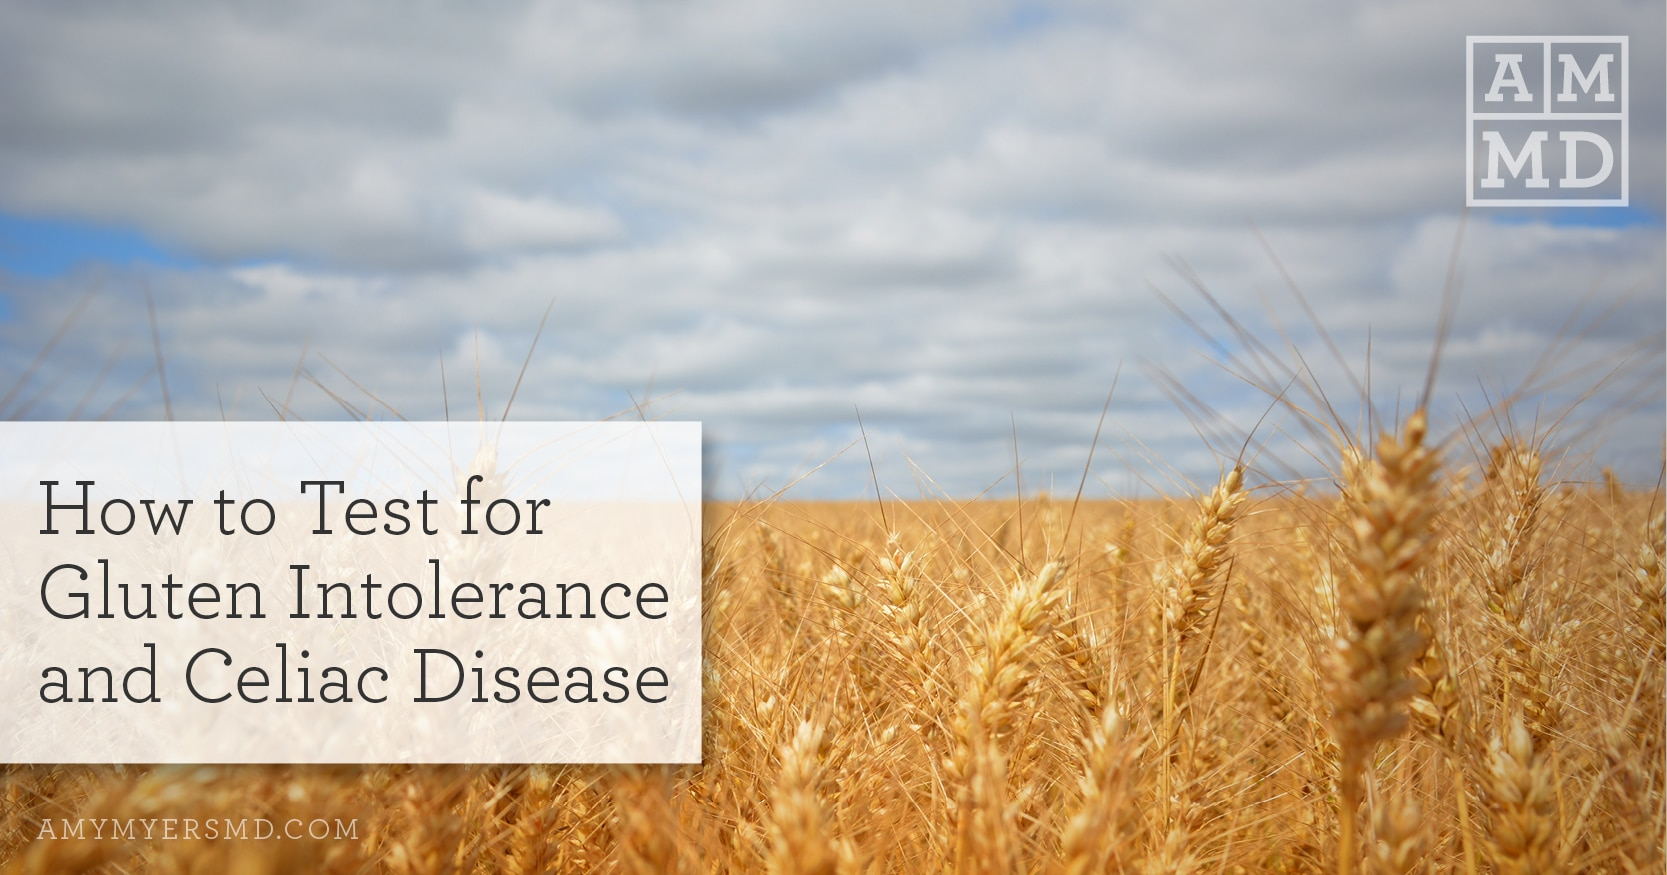 How to Test for Gluten Intolerance and Celiac Disease - Amy